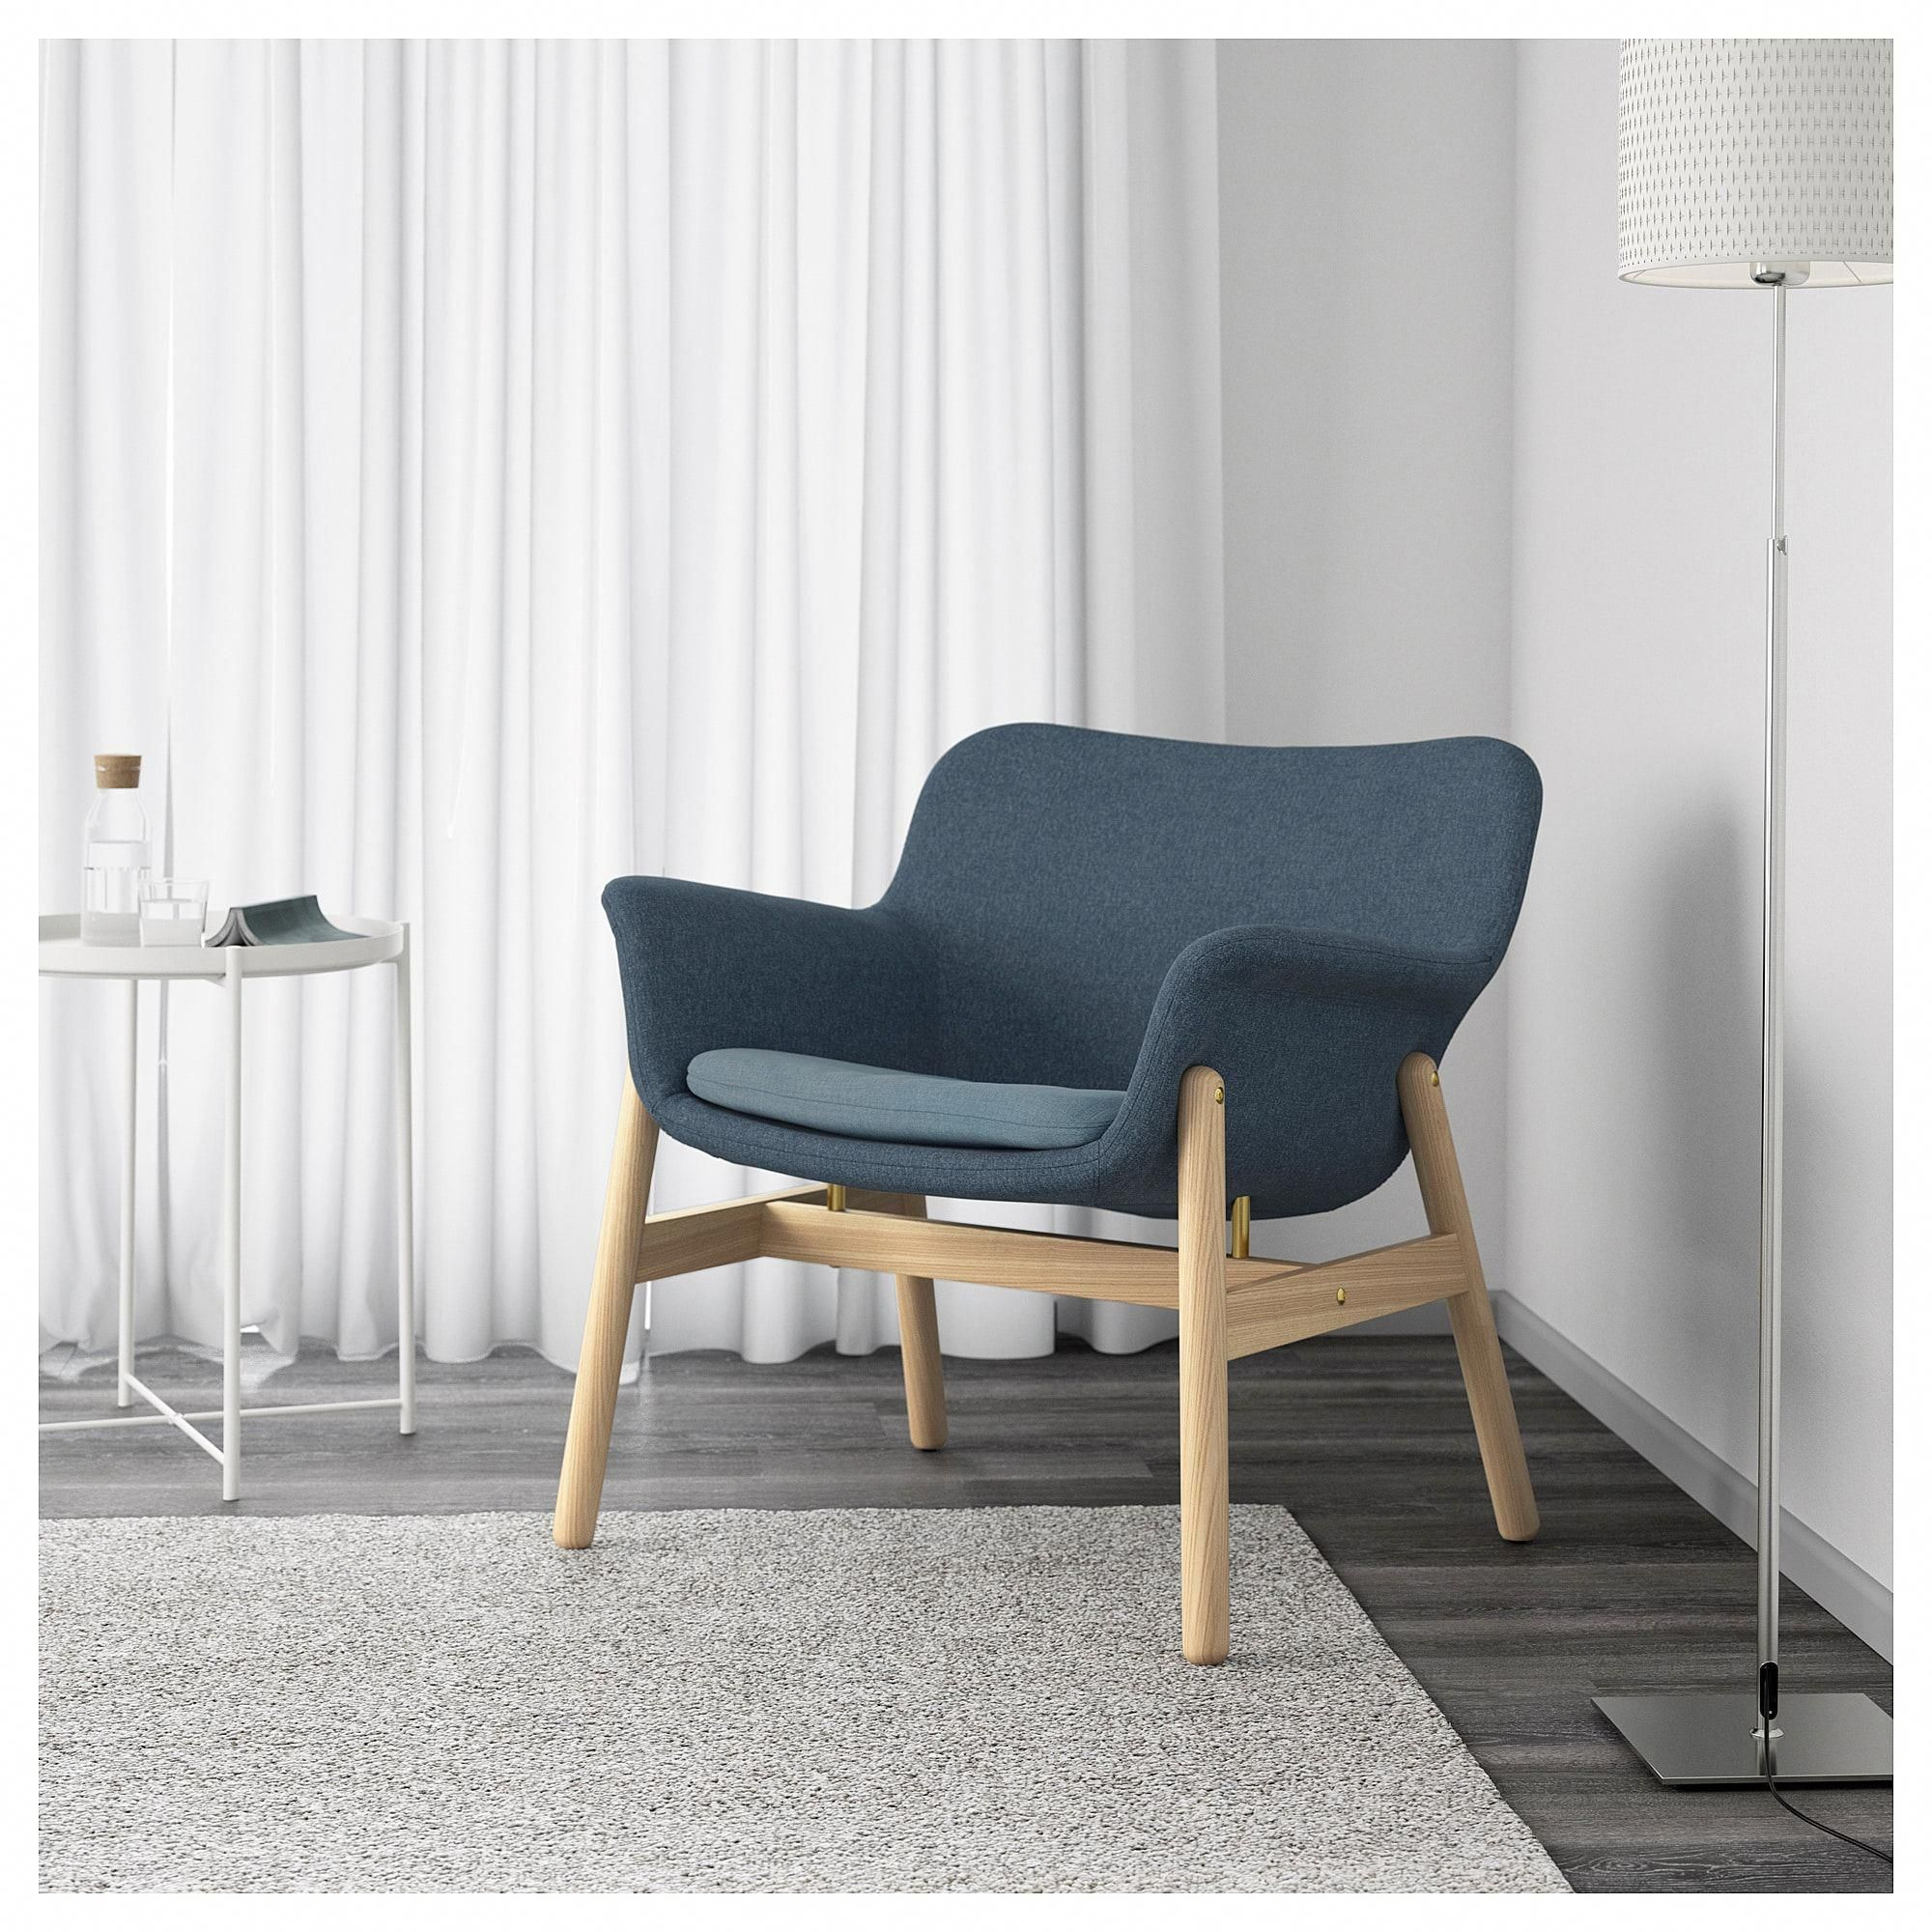 Lesesessel Ikea Ikea Vedbo Armchair Gunnared Blue In 2019 Home Furnishings